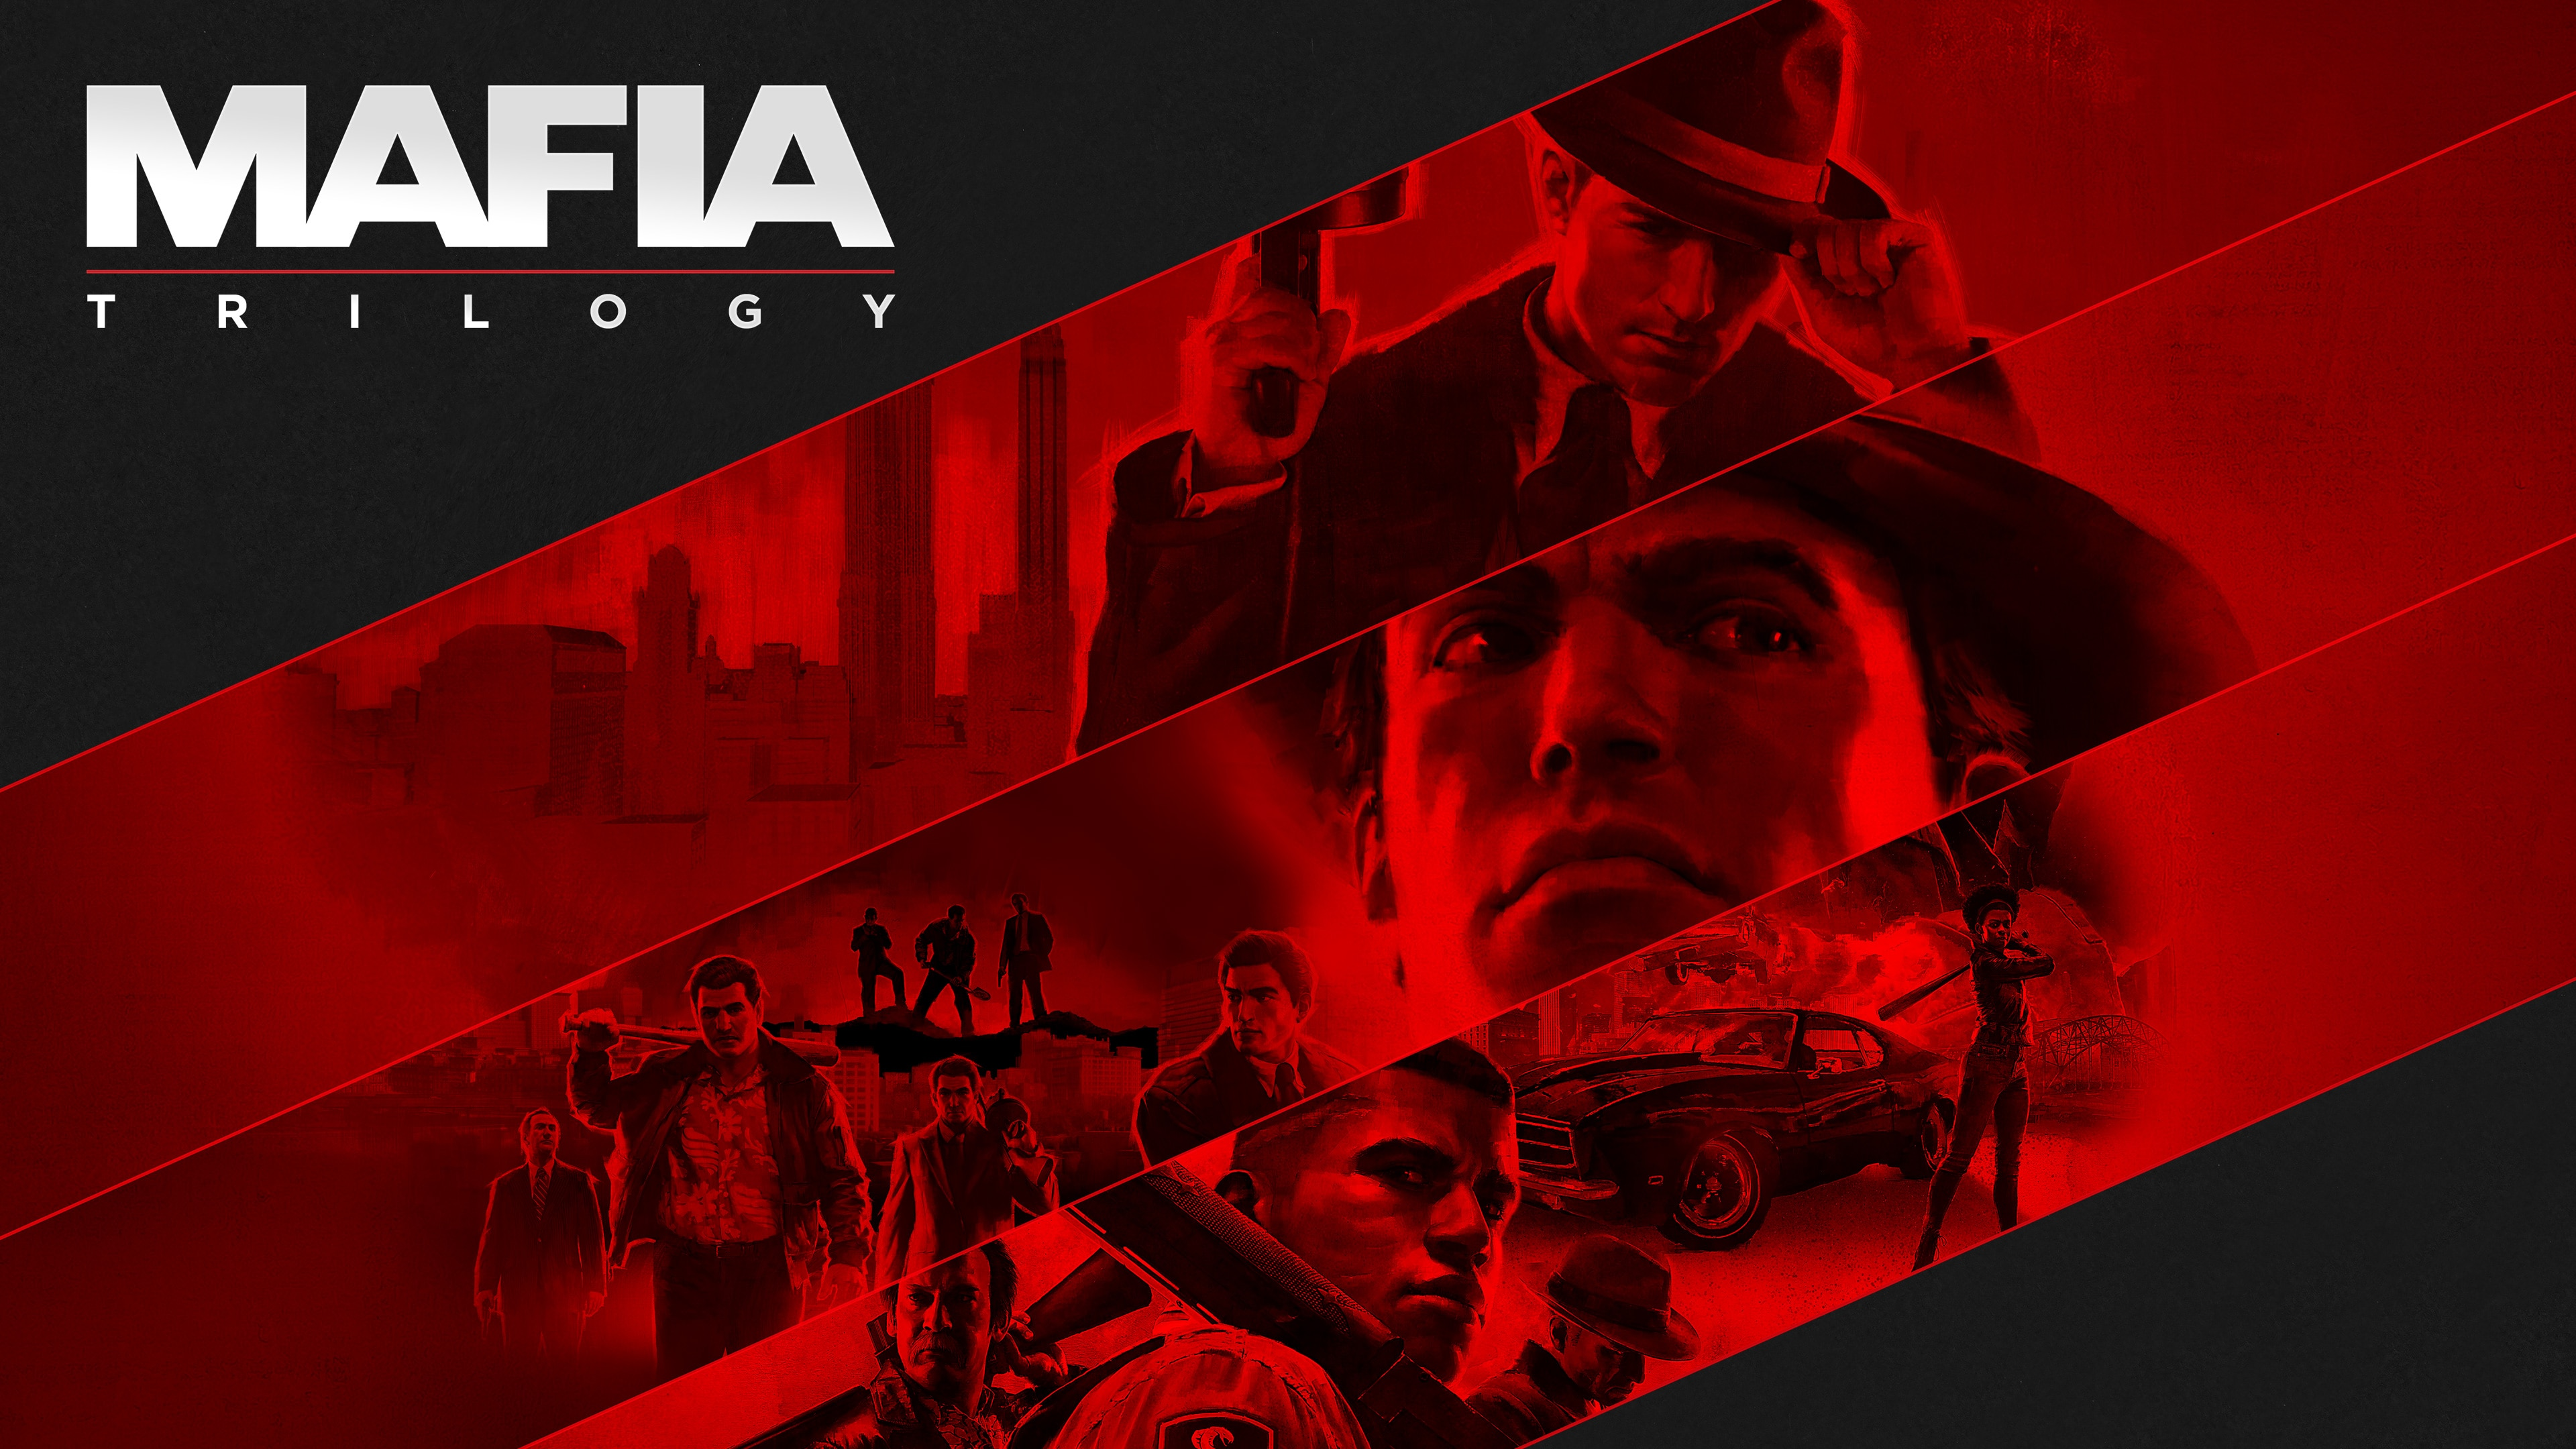 Mafia: Trilogy (Simplified Chinese, English, Korean, Japanese, Traditional Chinese)